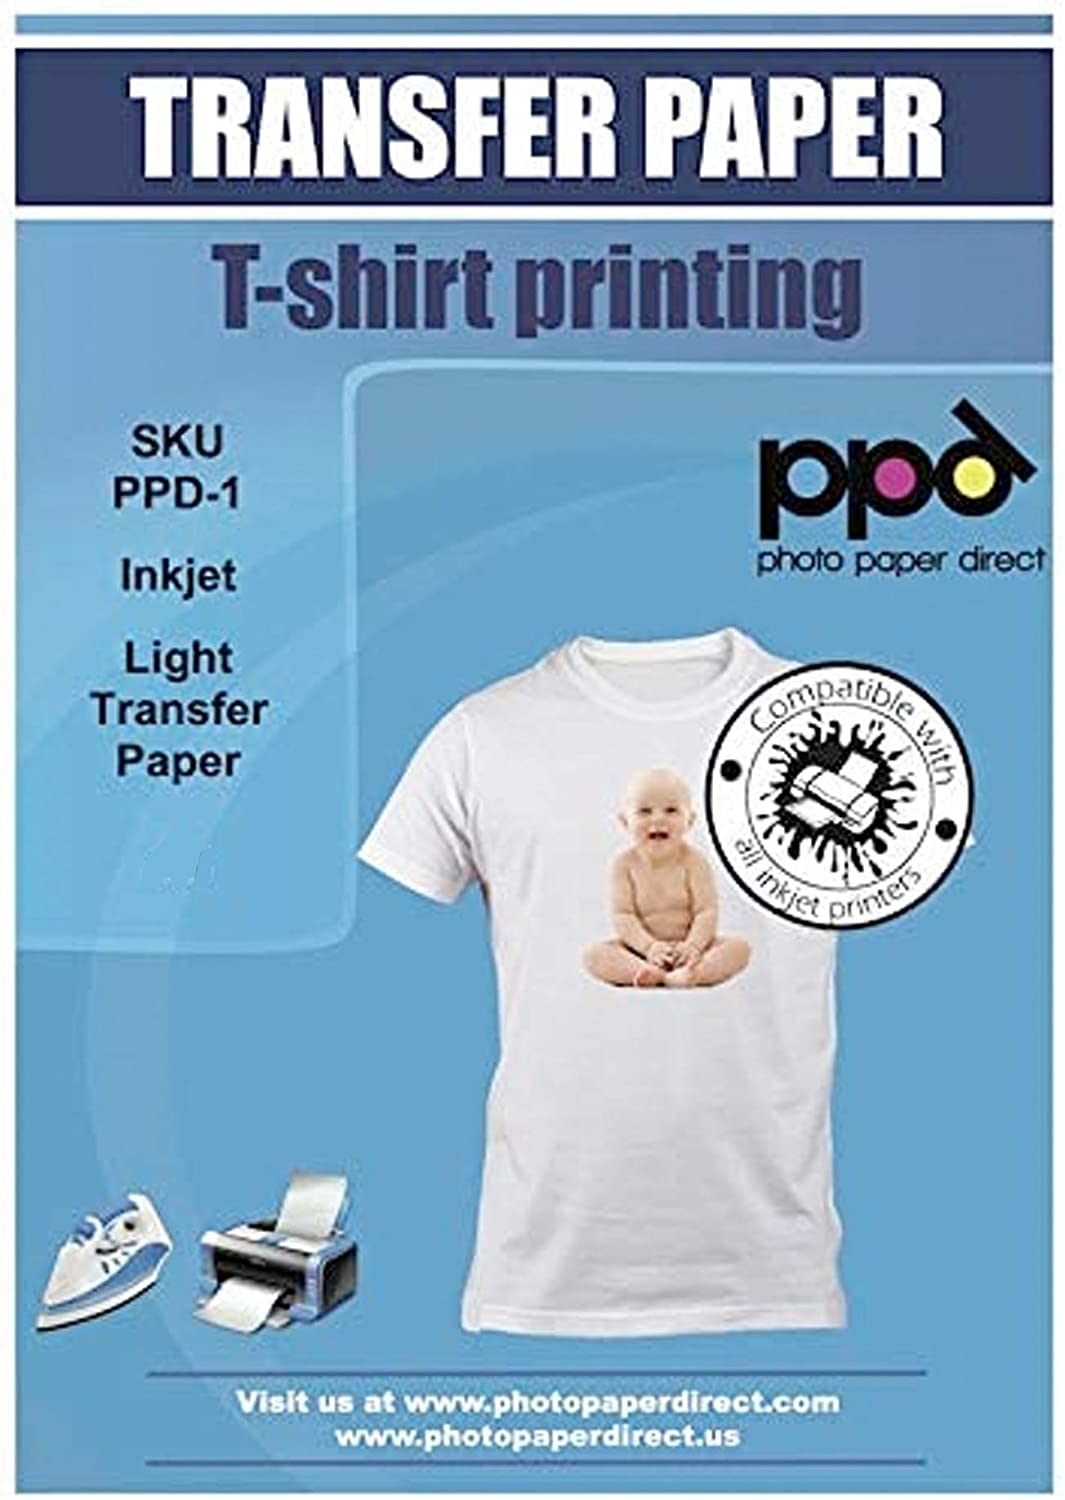 """PPD Inkjet Iron-On Light T Shirt Transfers Paper LTR 8.5x11"""" Pack of 50 Sheets (PPD-1-50)"""